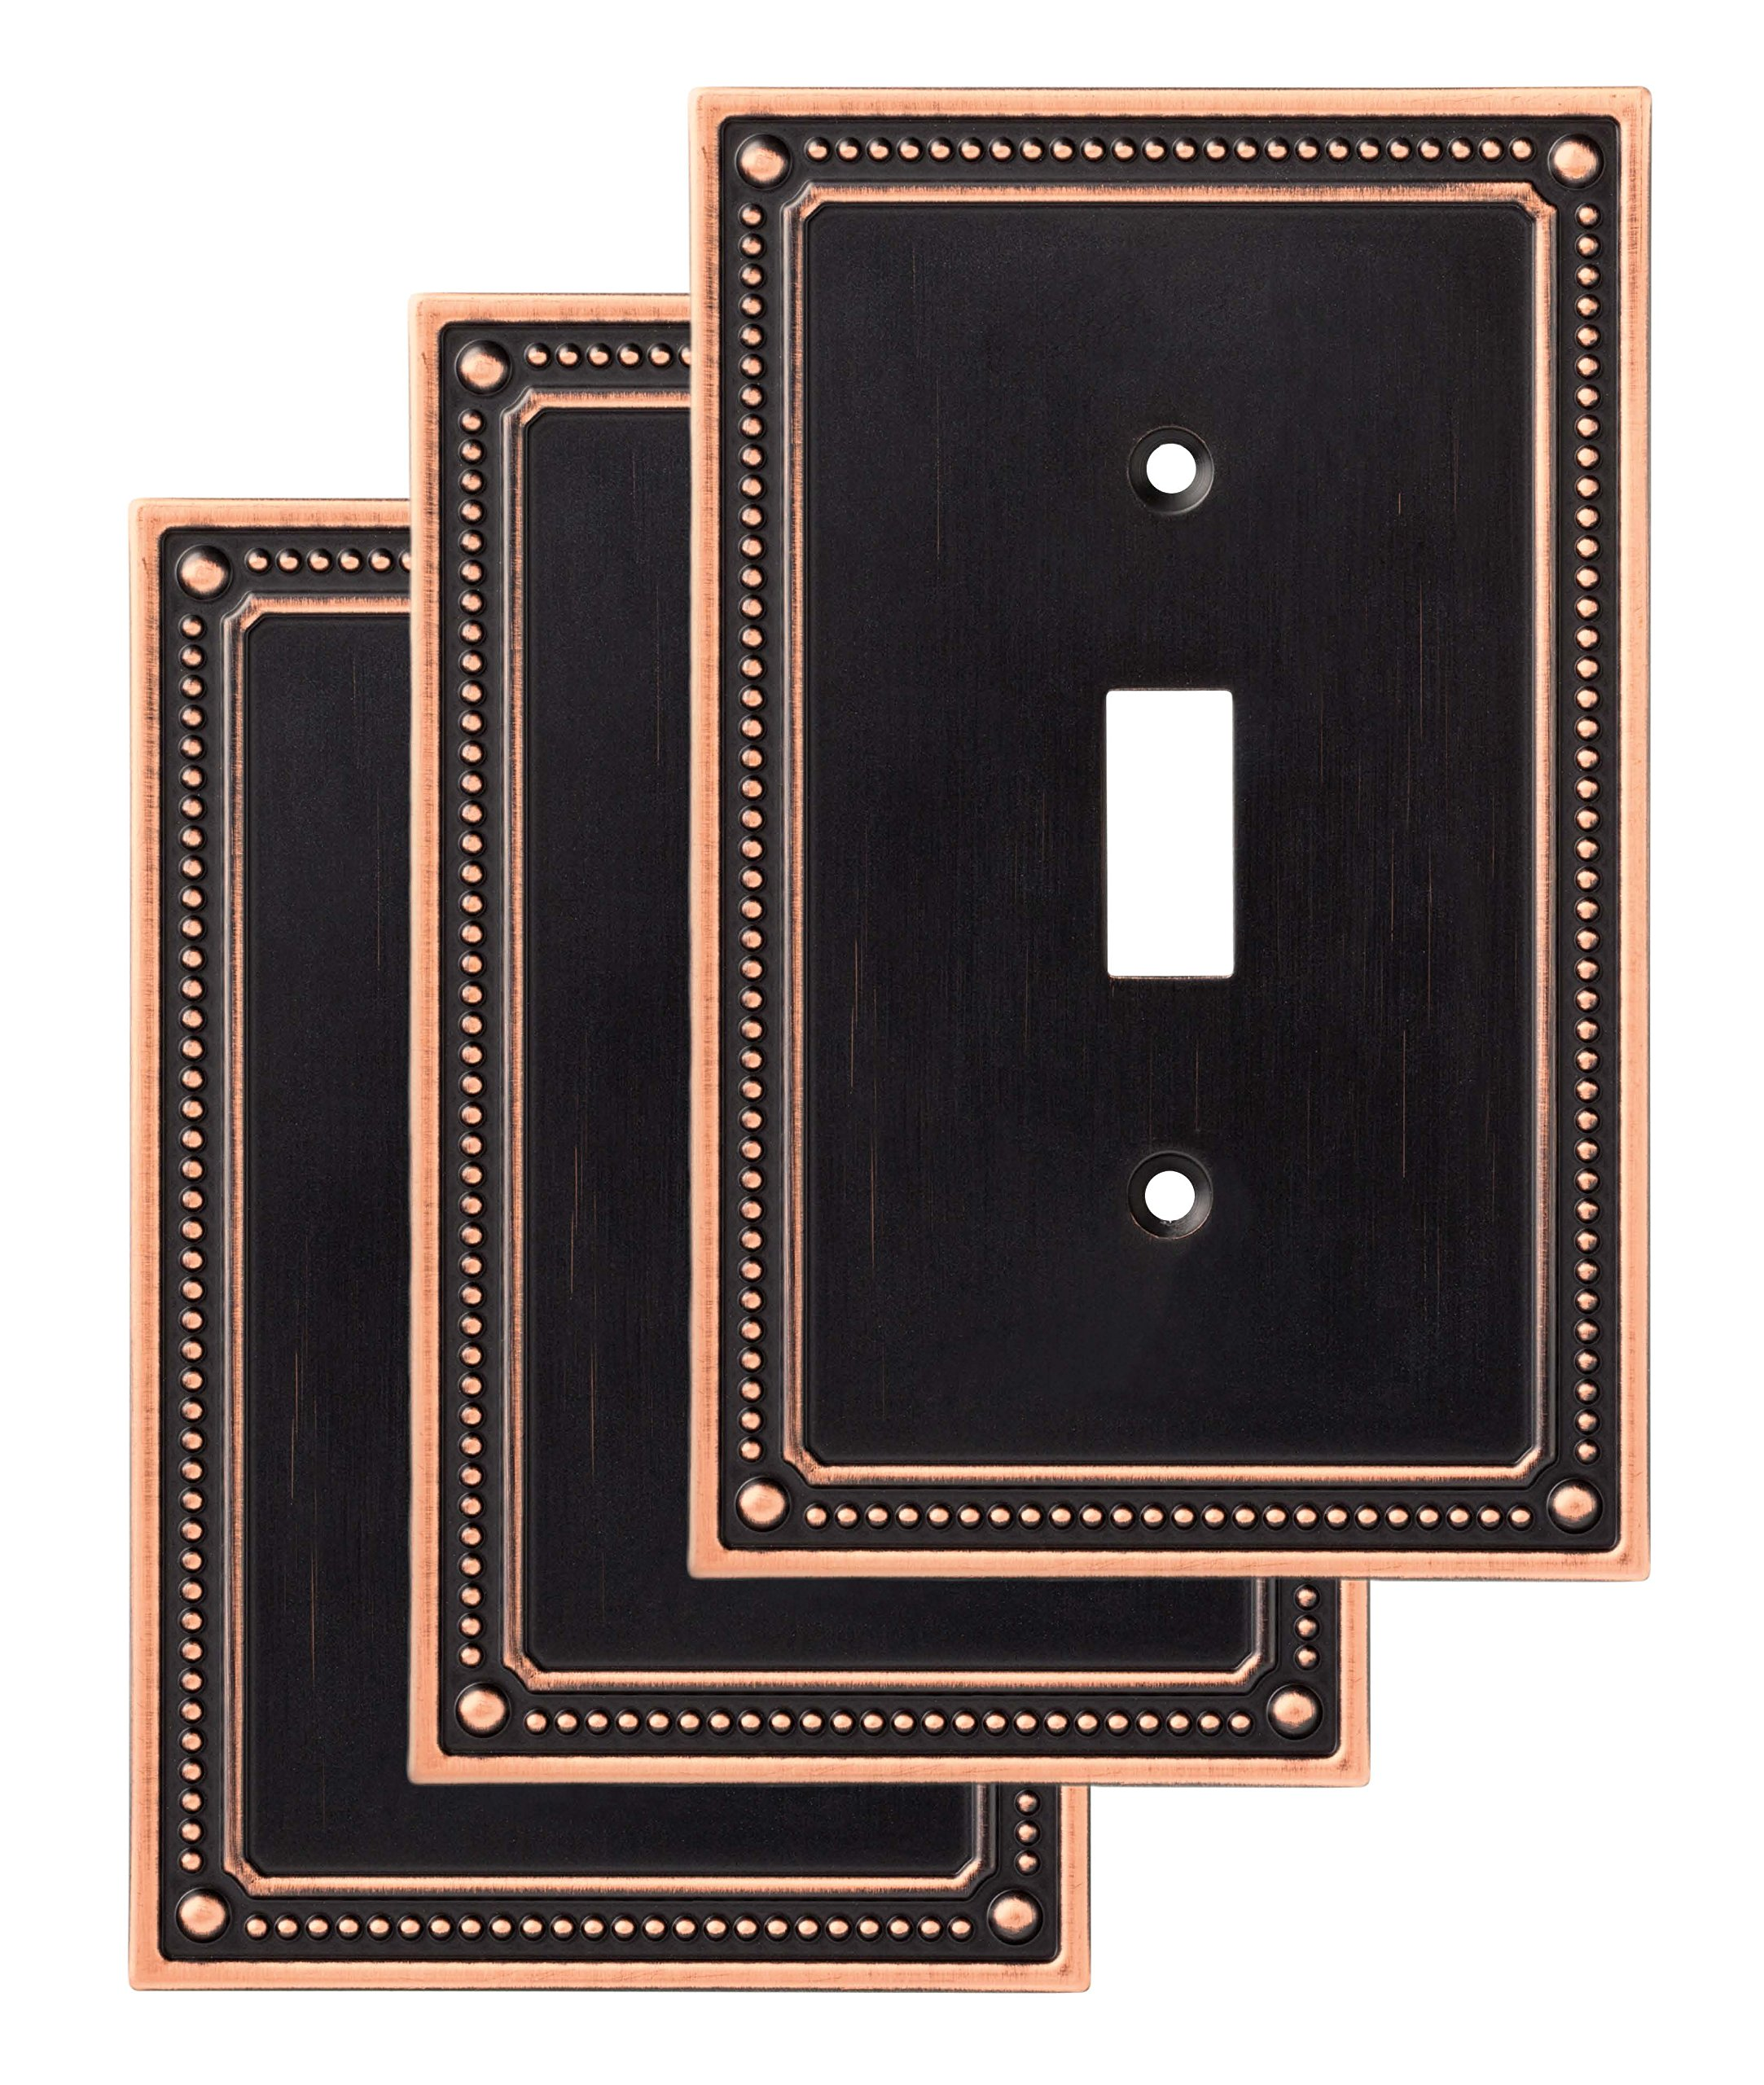 Franklin Brass W35058V-VBC-C Classic Beaded Single Switch Wall Plate/Switch Plate/Cover (3 Pack) Bronze with Copper Highlights